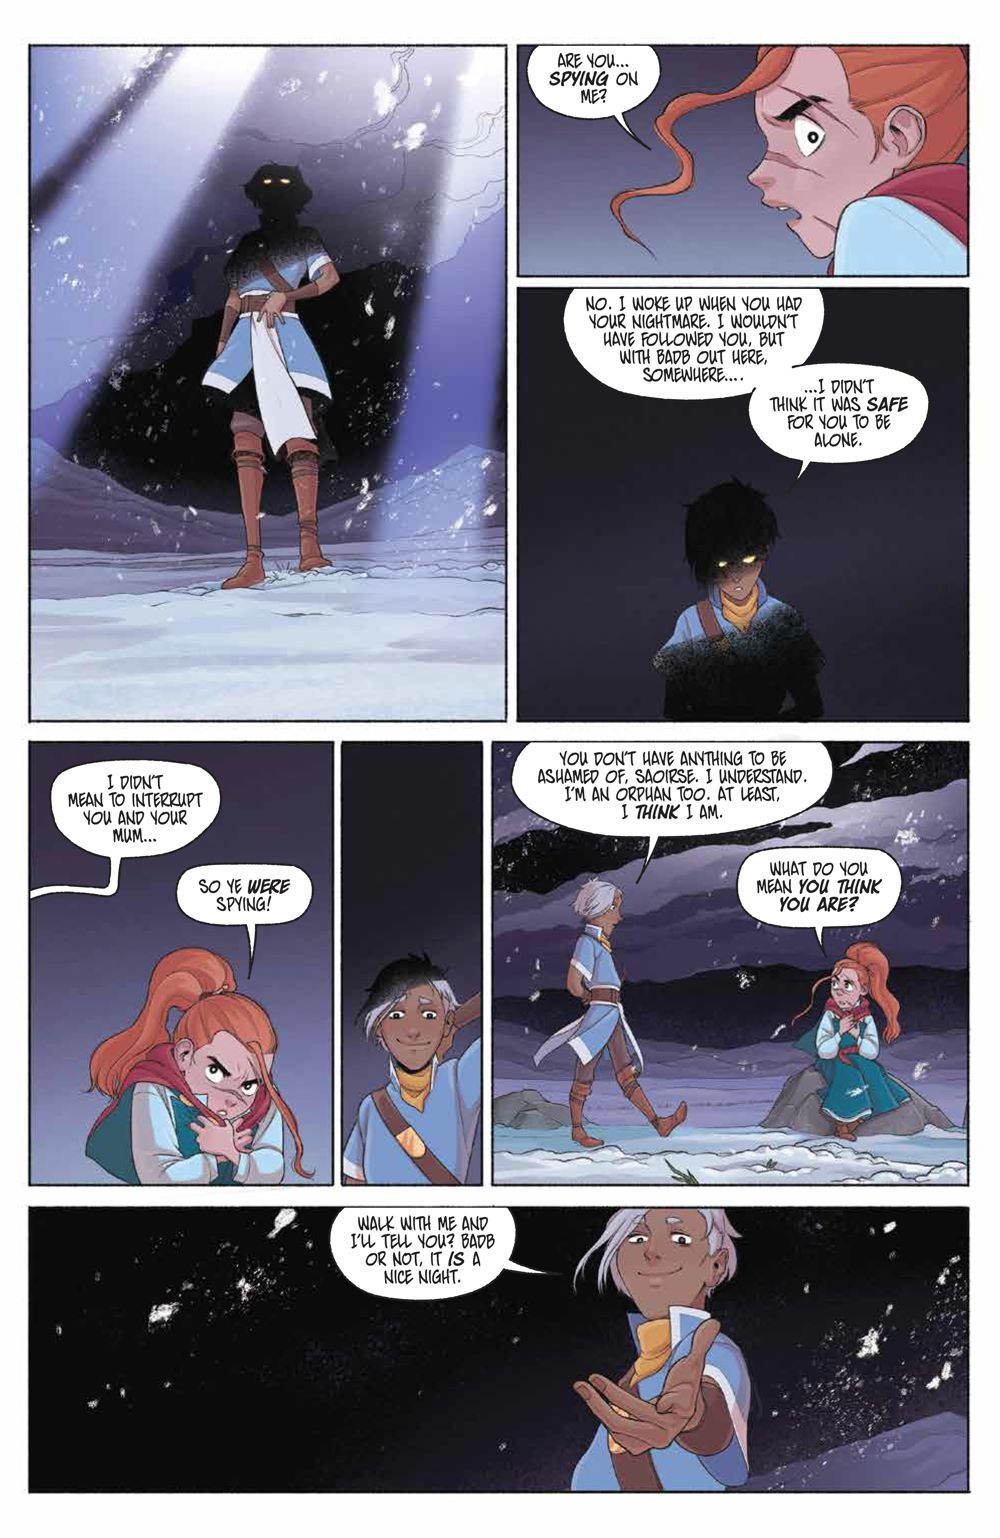 LastWitch_005_PRESS_6 ComicList Previews: THE LAST WITCH #5 (OF 5)